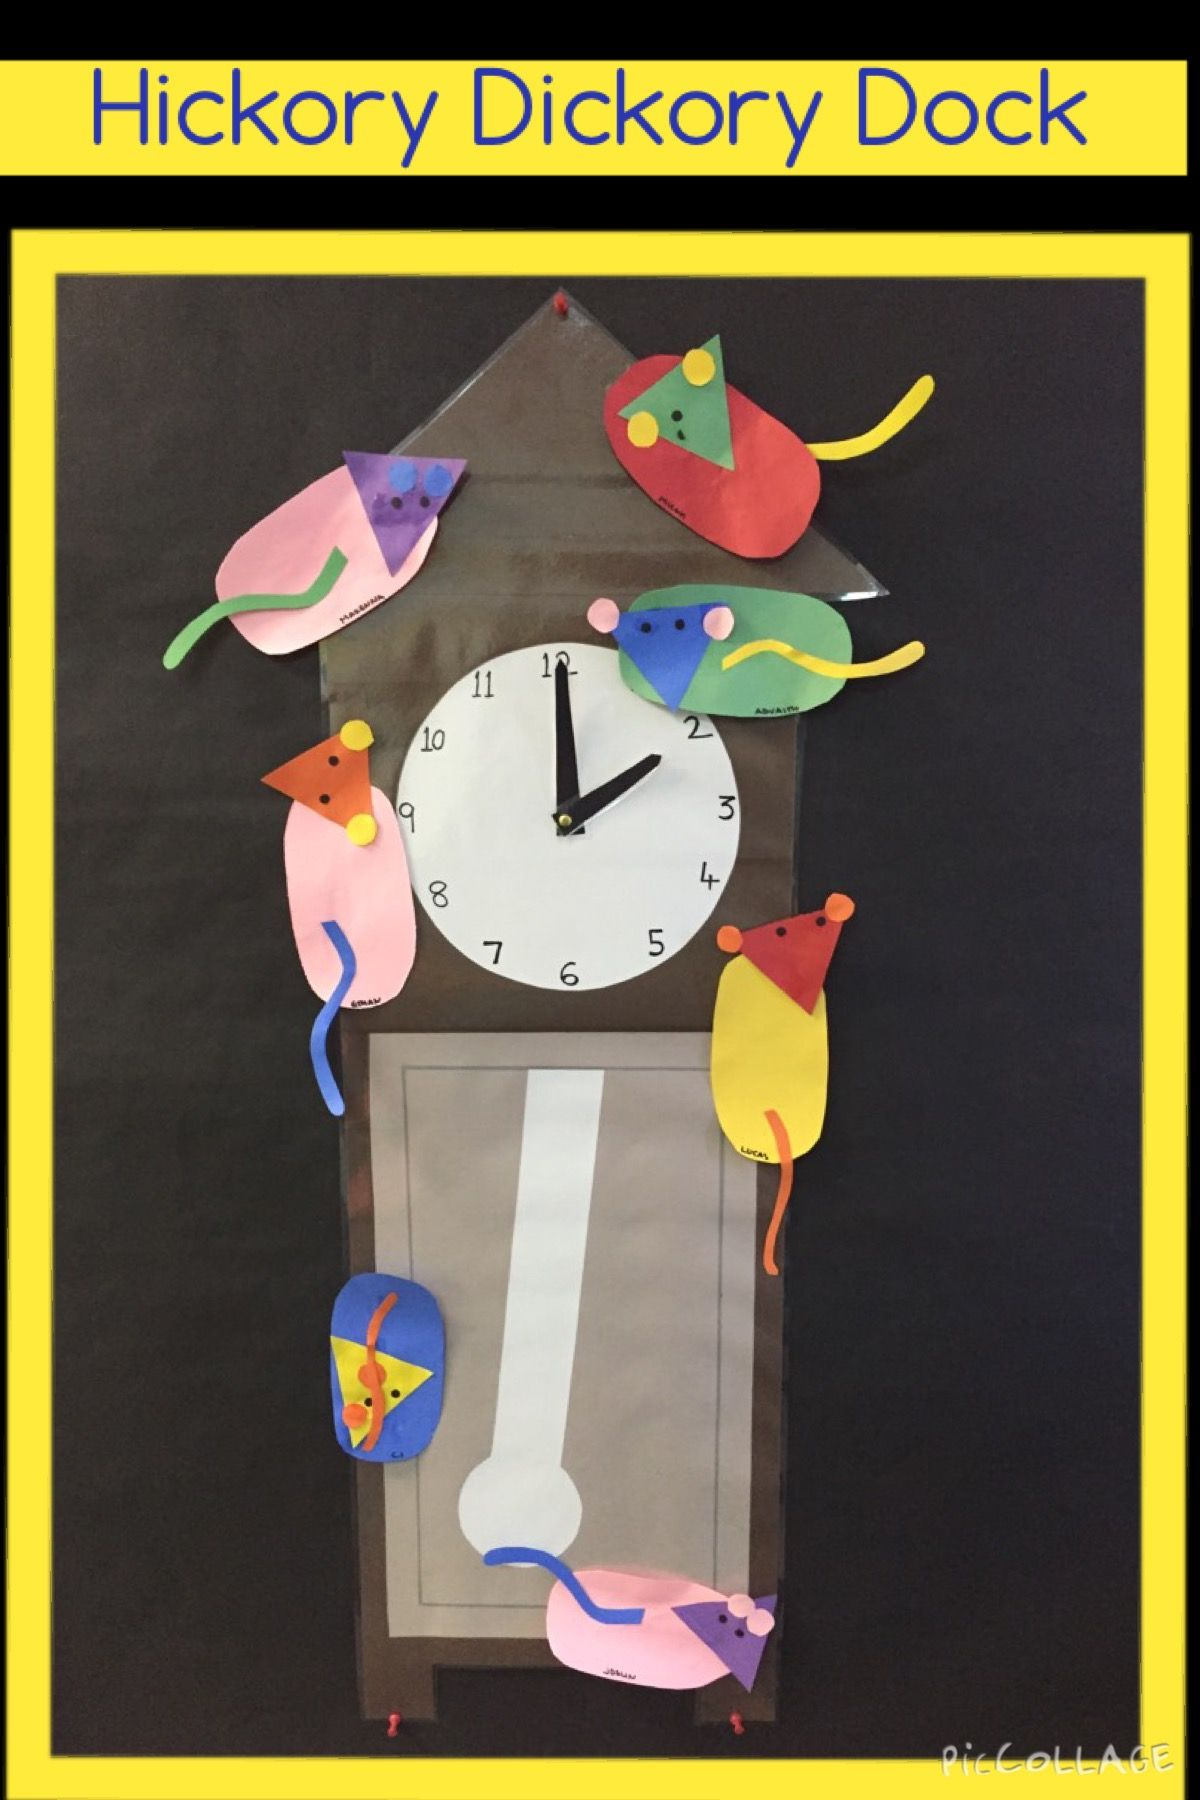 Hickory Dickory Dock Used Clock For Kiddos To Retell The